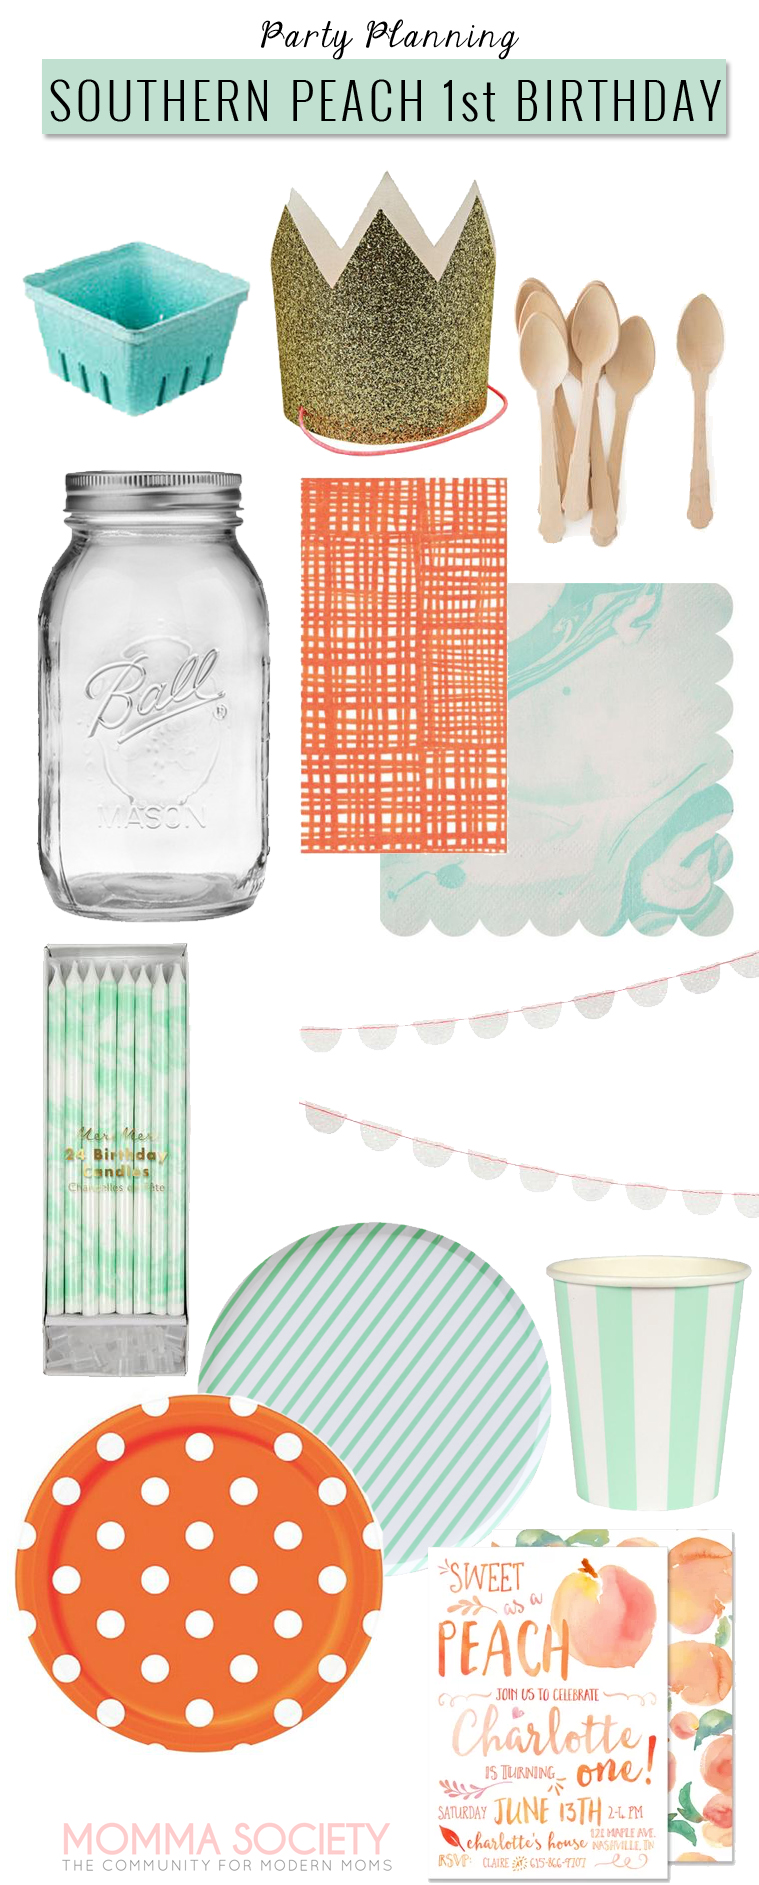 Peach Party Inspiration Board